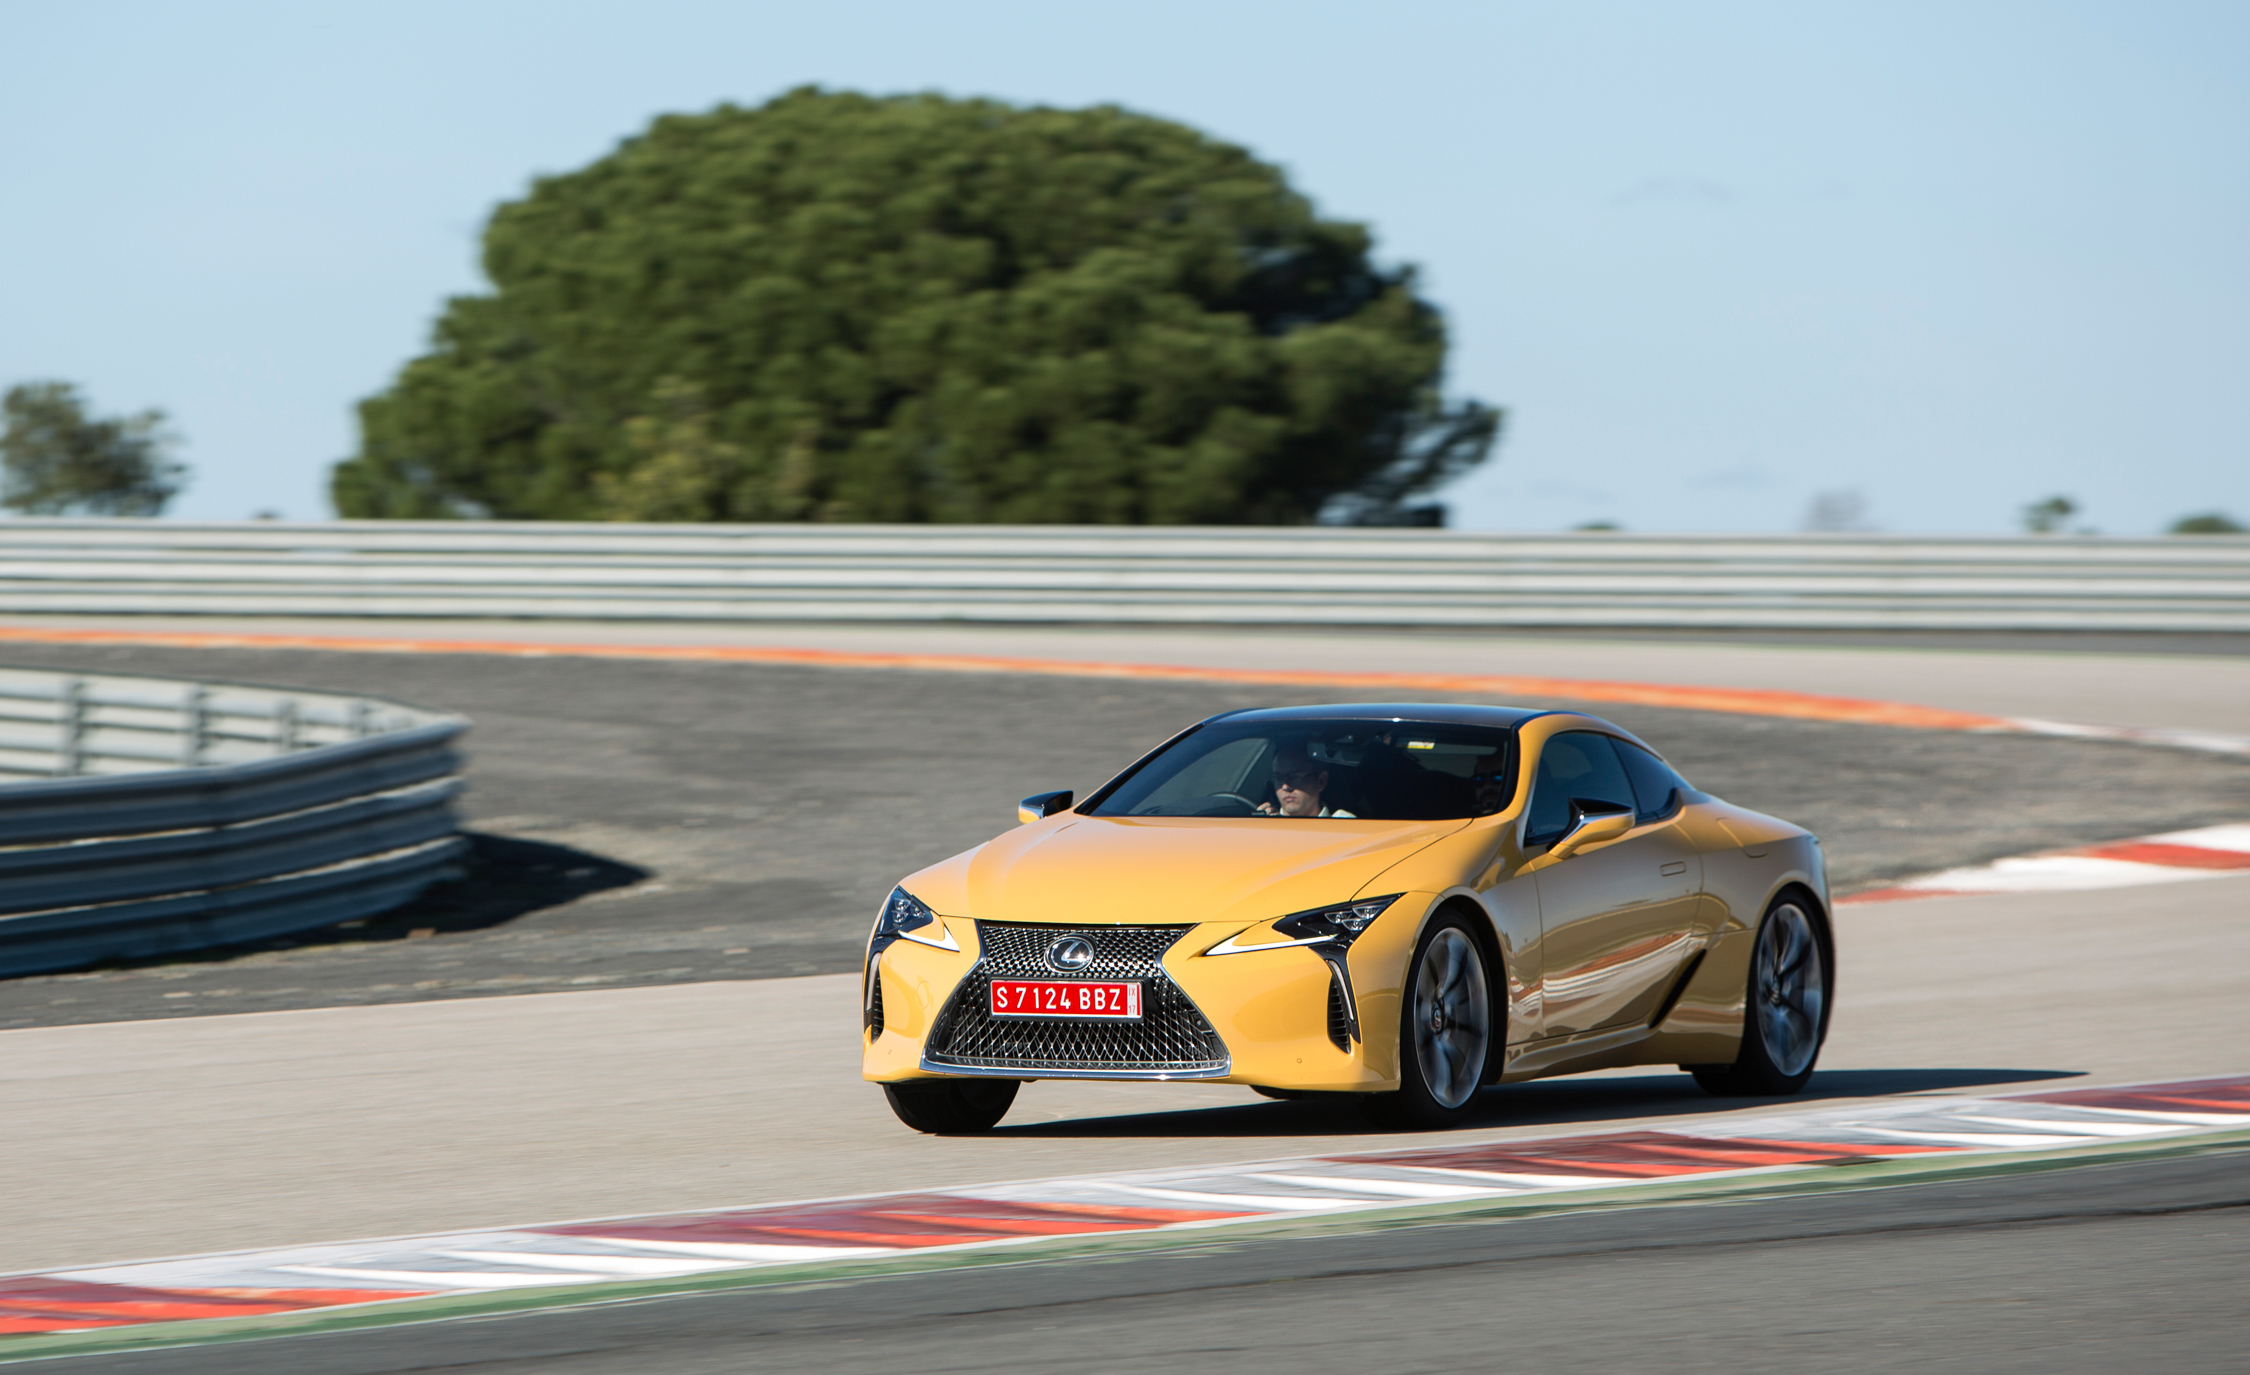 2018 Lexus Lc 500 Performance Front And Side View (Photo 15 of 84)